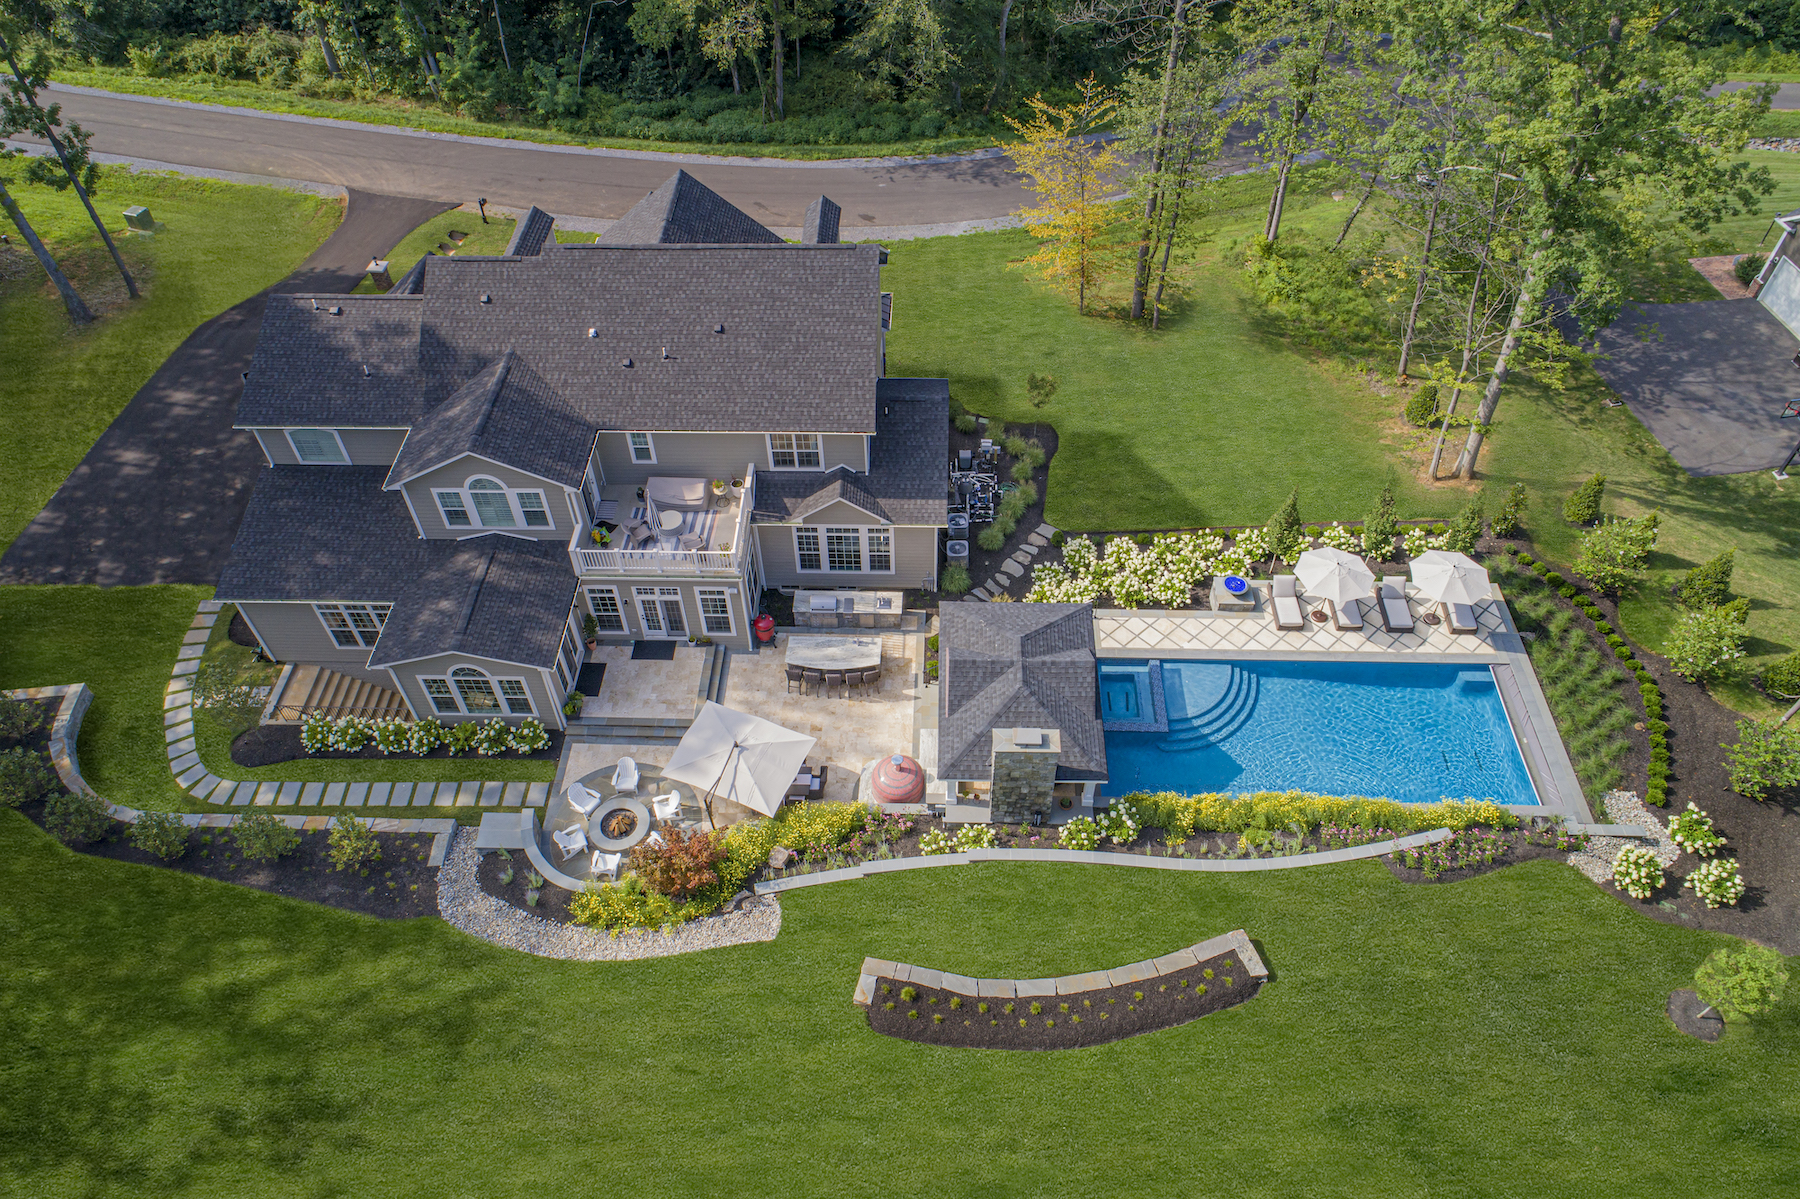 Aerial view of large patio layout